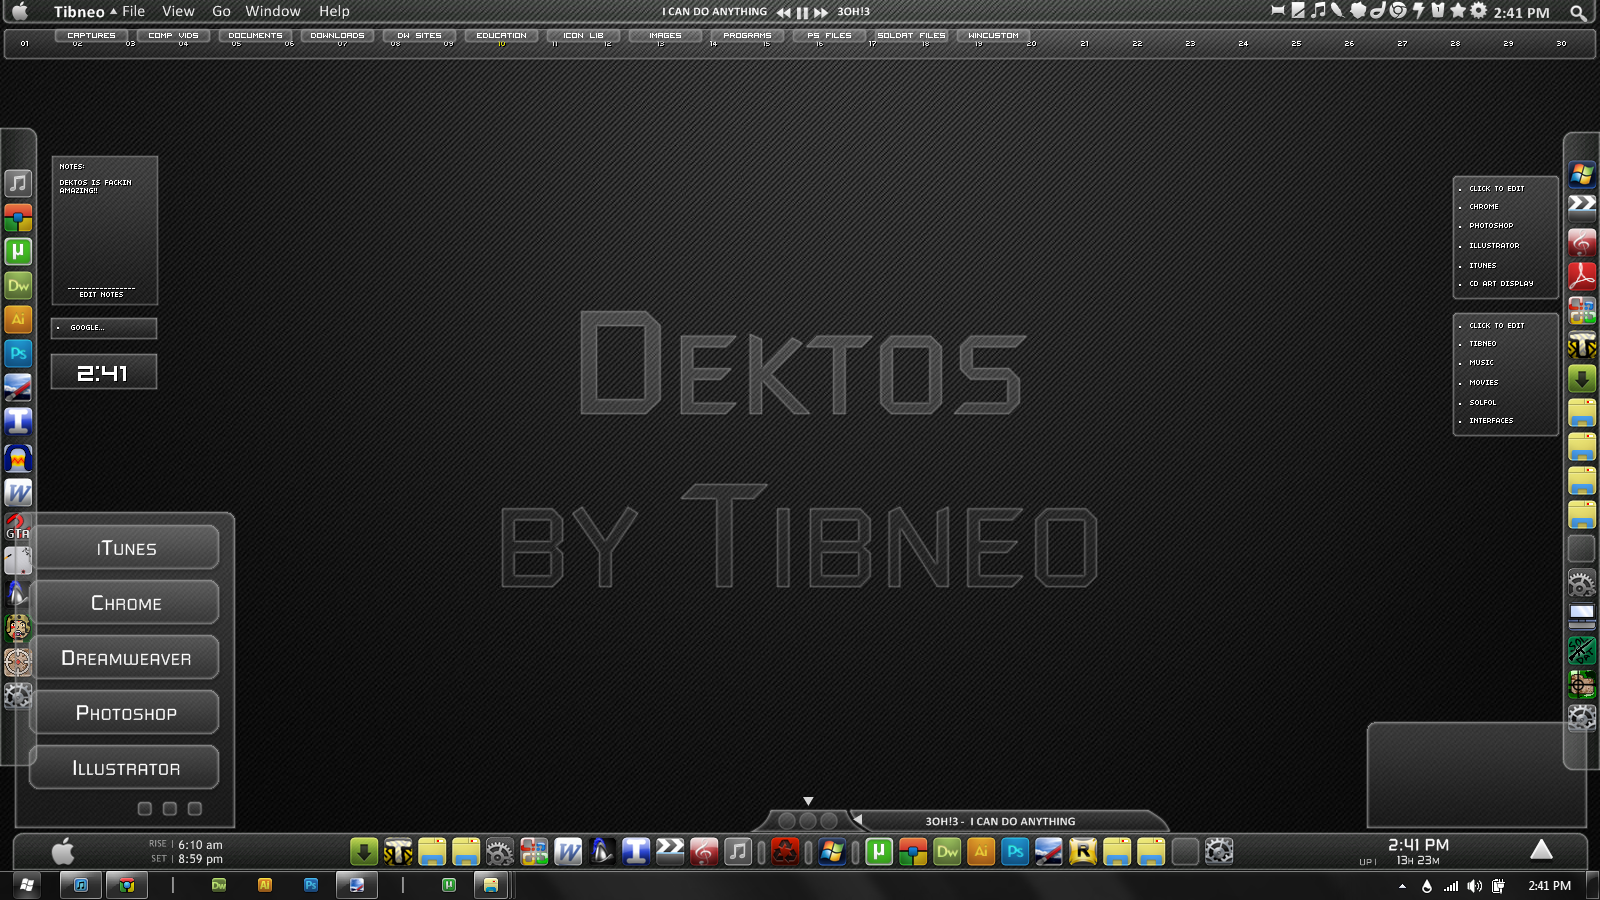 Dektos rainmeter theme for windows 7 for Bureau windows 7 rainmeter